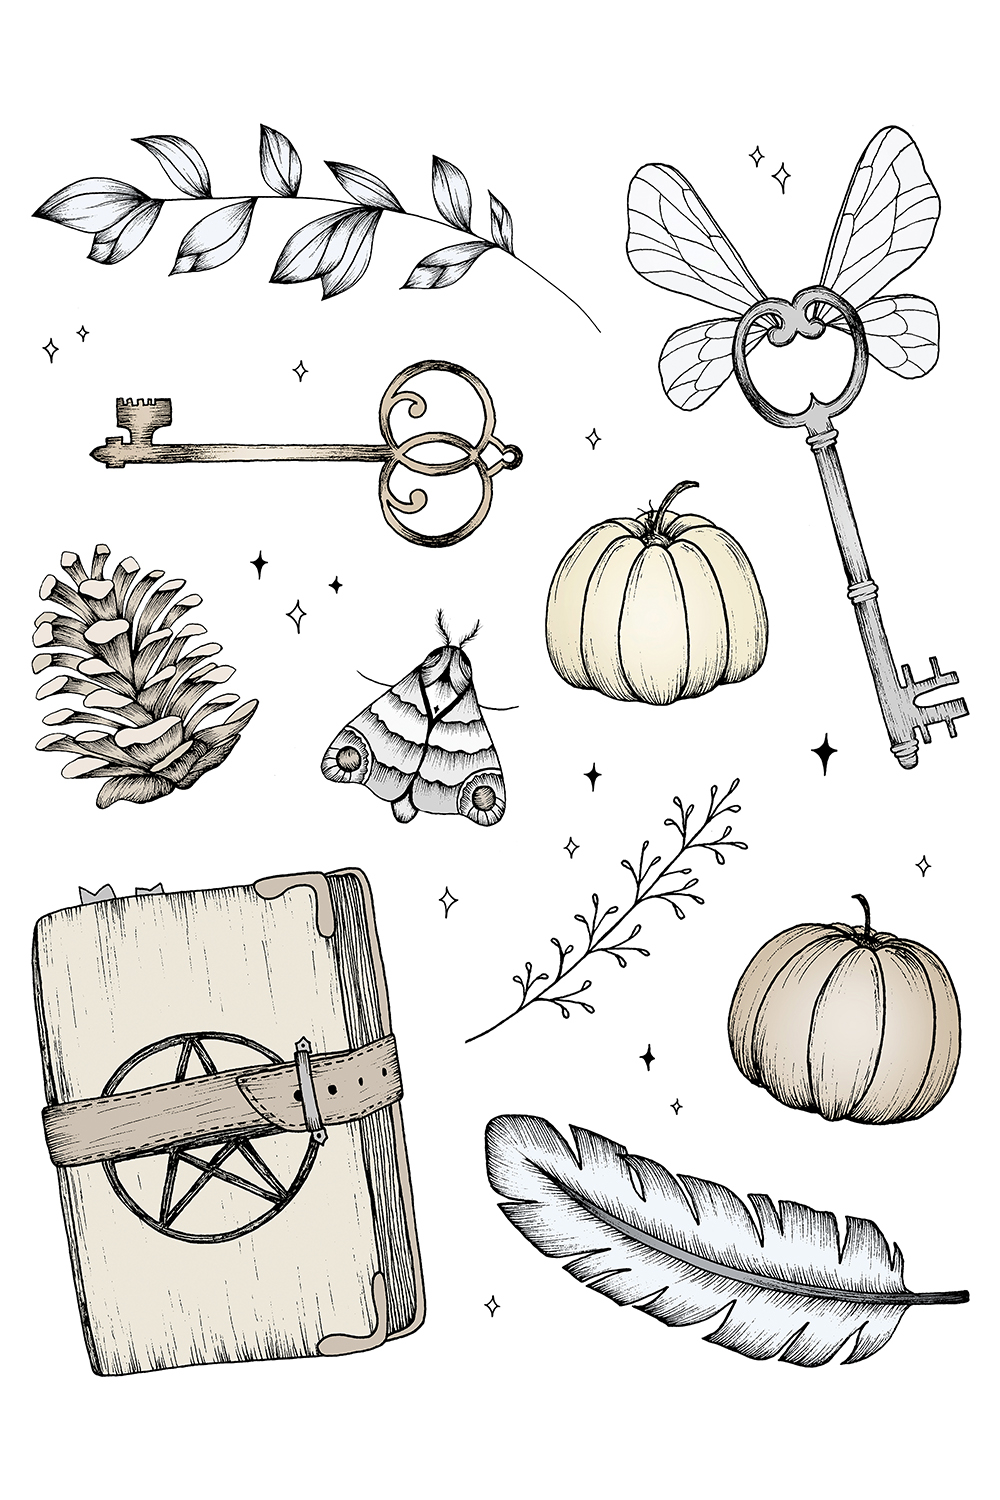 Illustrations of magic items such as a spell book, feather, pumpkin, moth, pine cone, and flying key